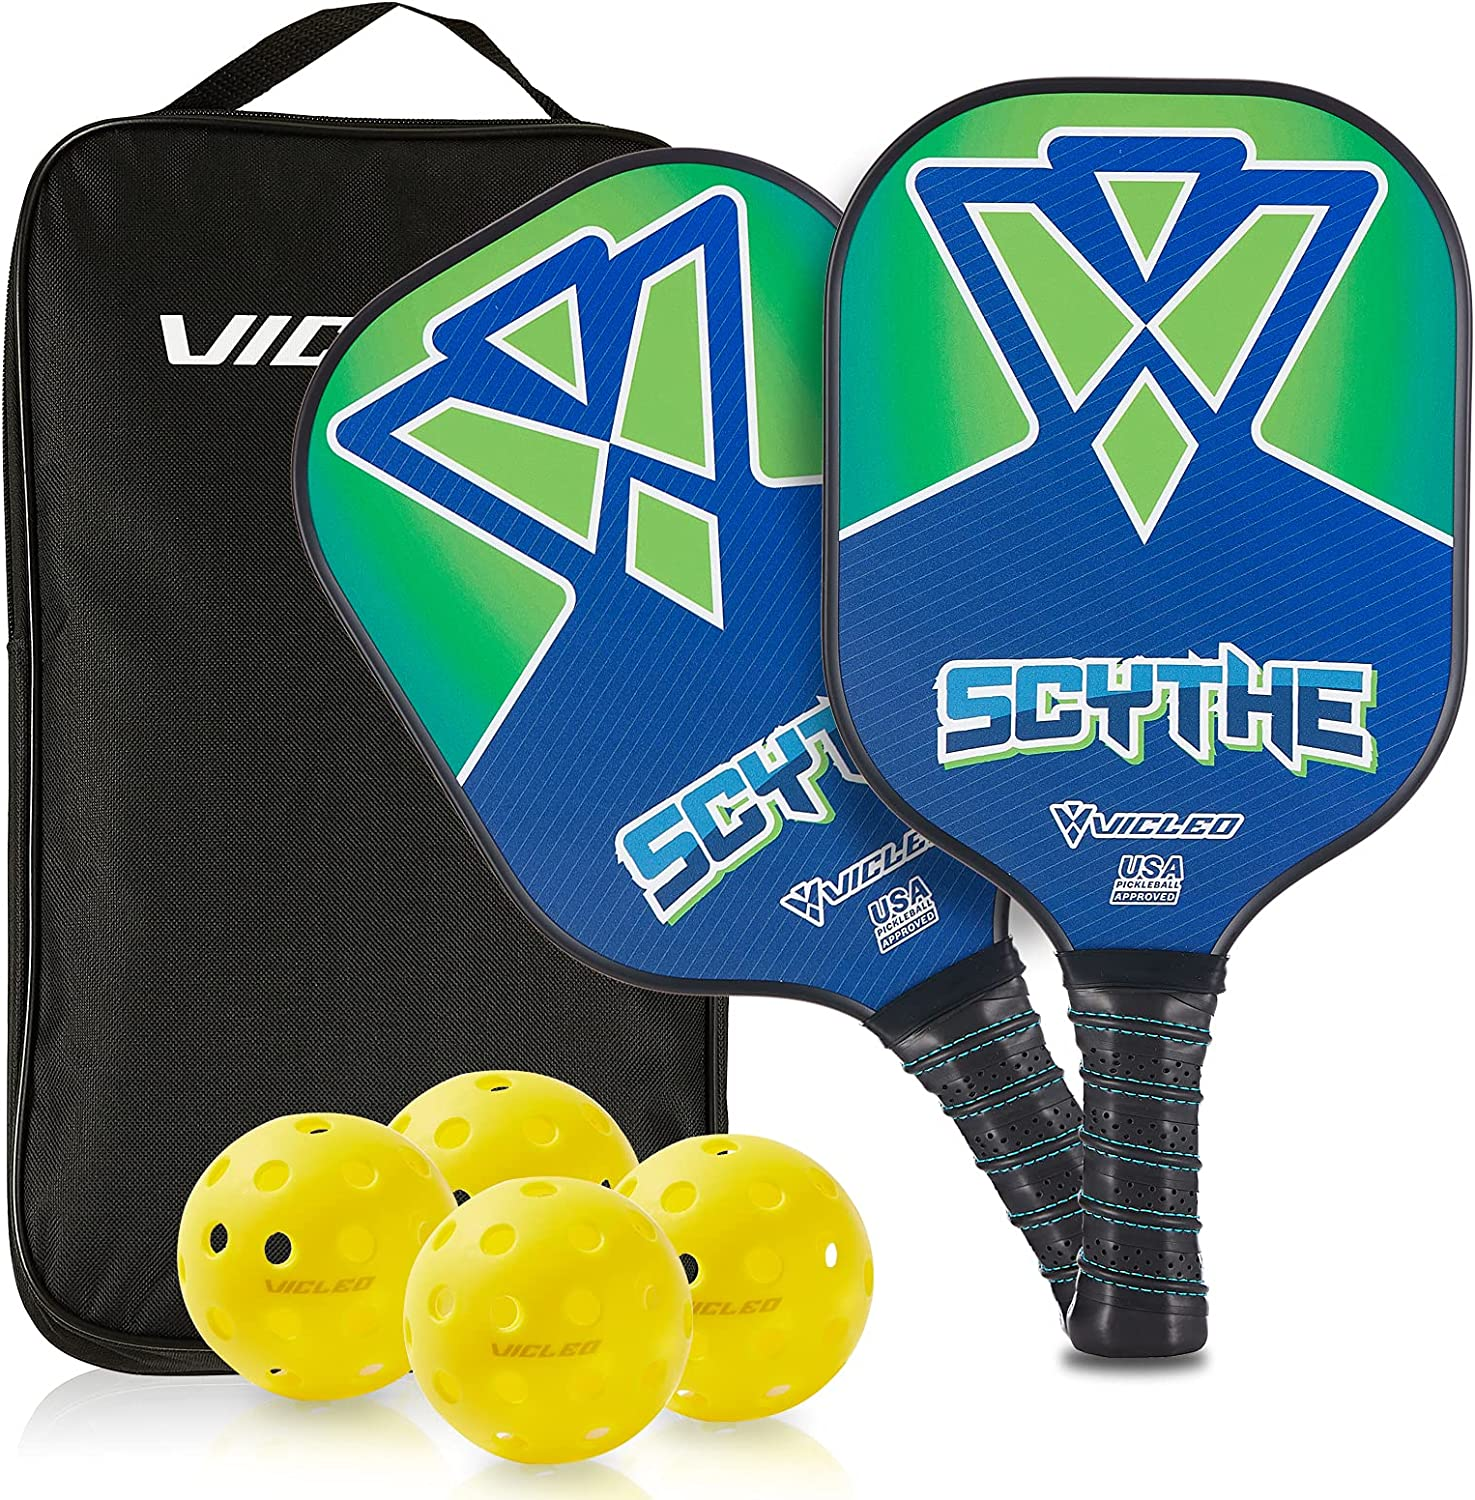 VICLEO Pickleball Paddles Set of price 2 Rackets 4 Carrying Super sale with Balls